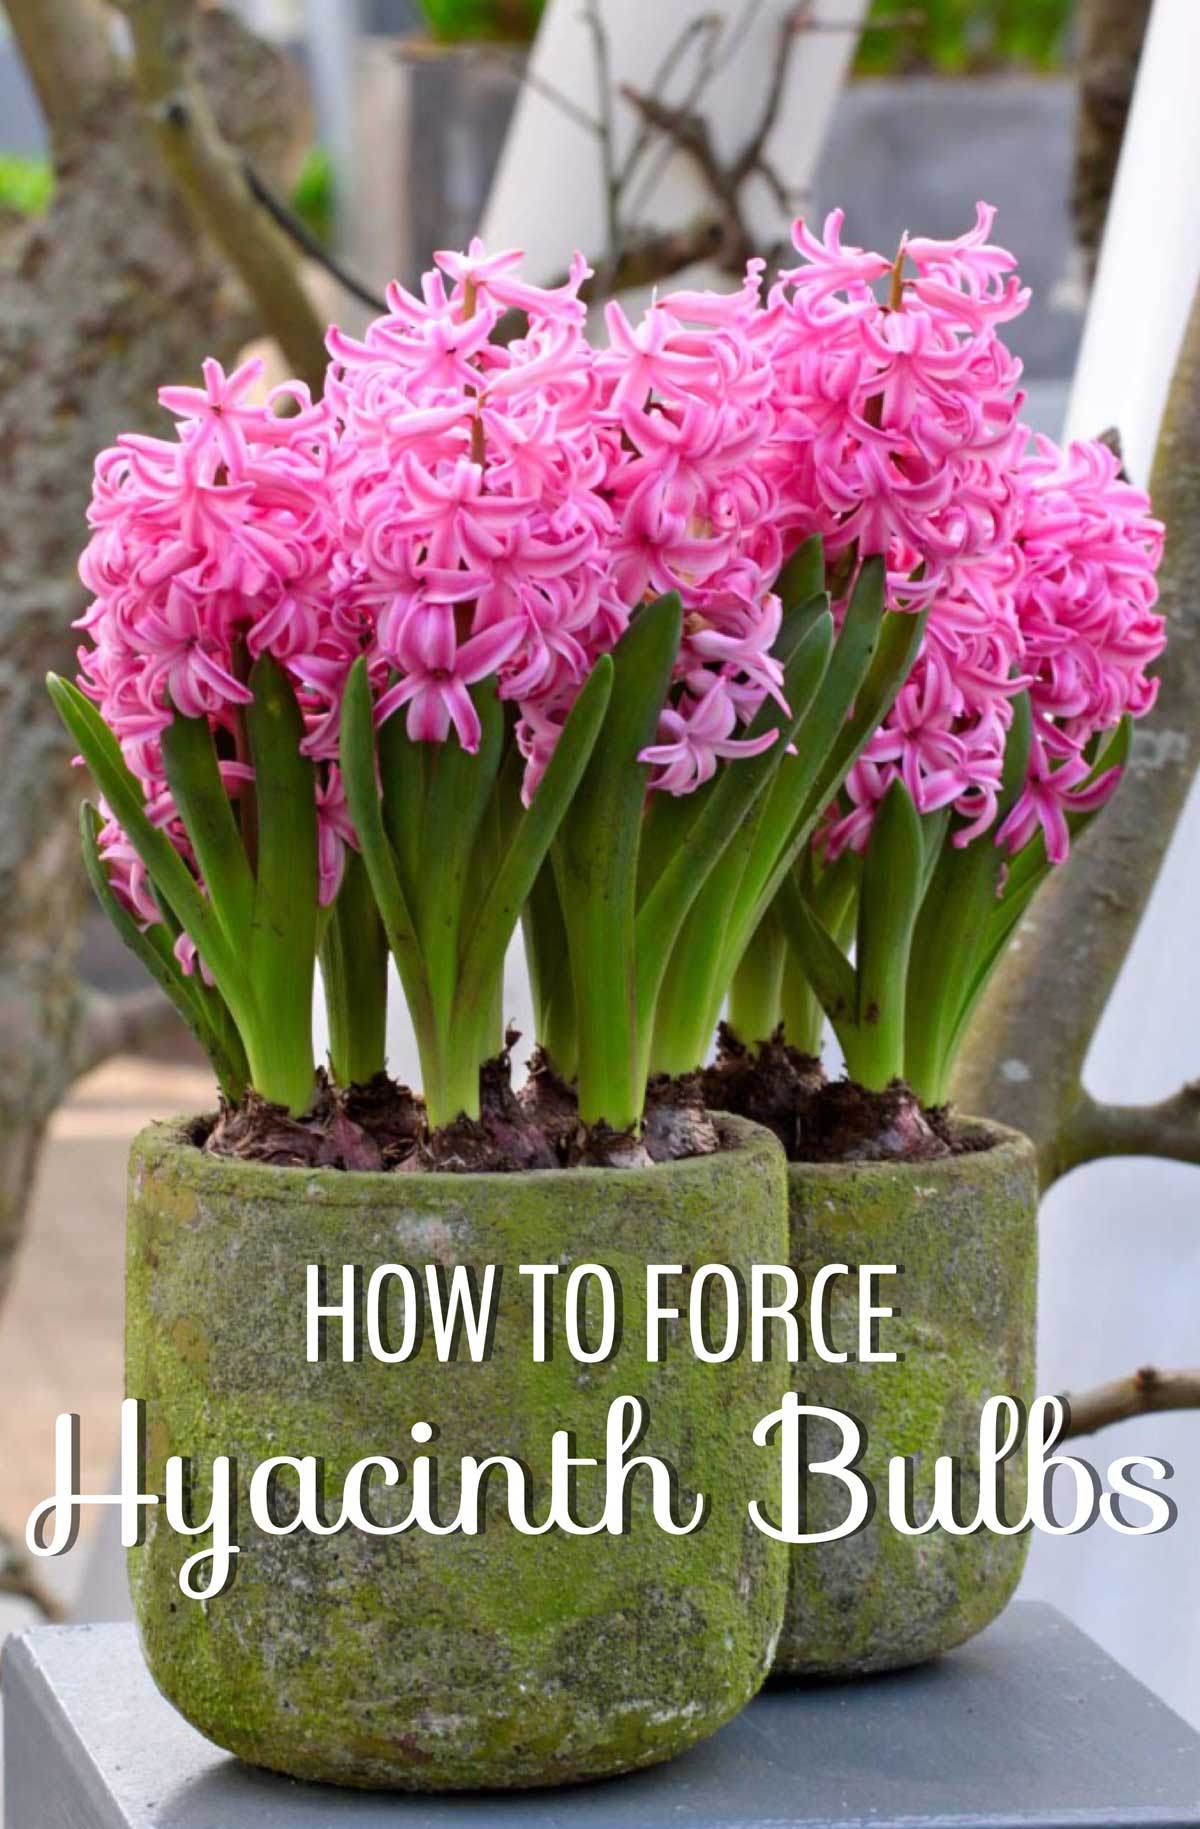 How To Force Hyacinth Bulbs For Indoor Flowers